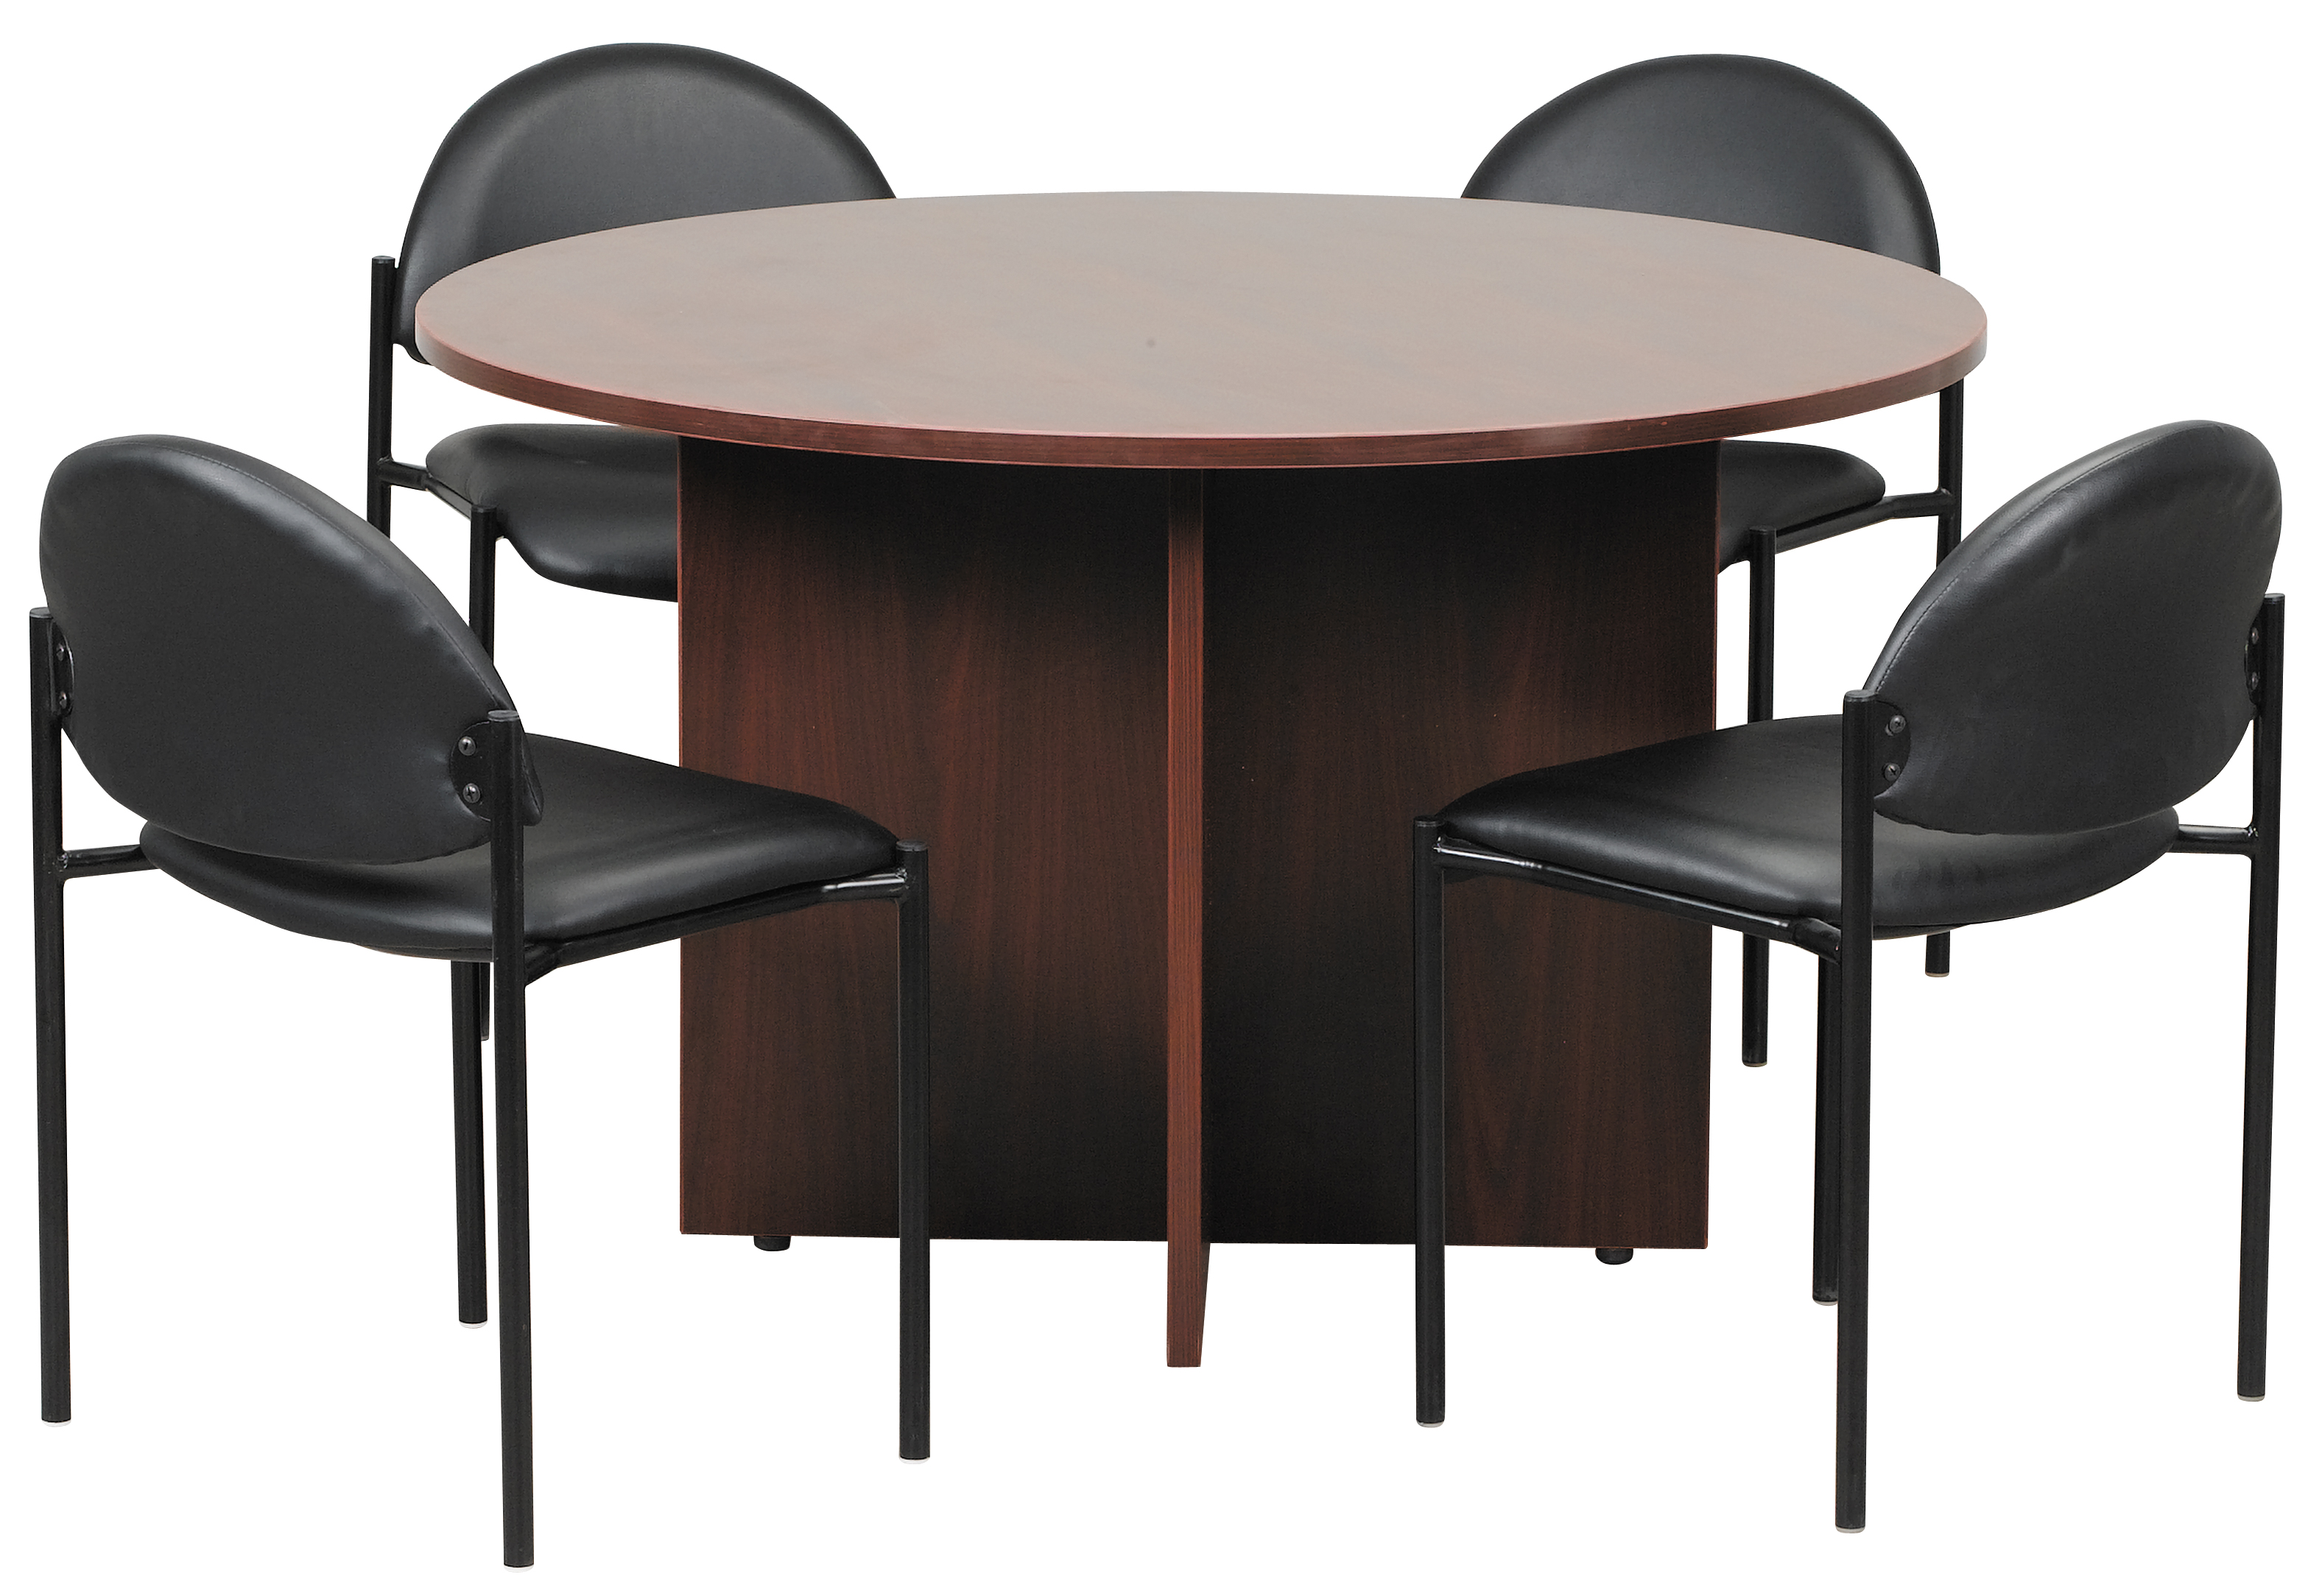 hoppers office furniture conference tables - Small Conference Table